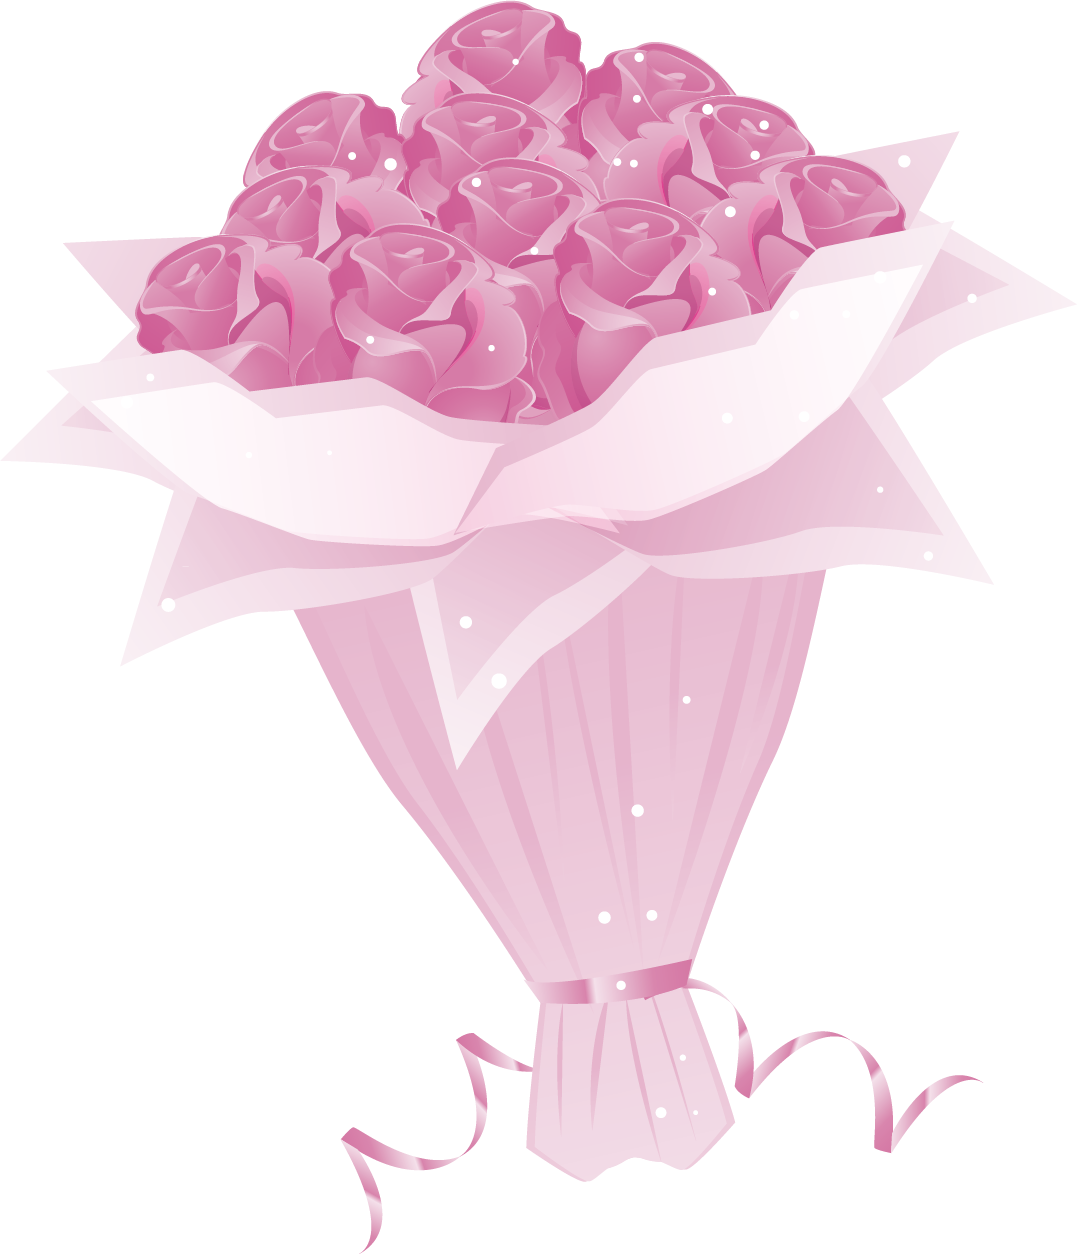 Bouquet vector rose illustration. Euclidean beach pink roses